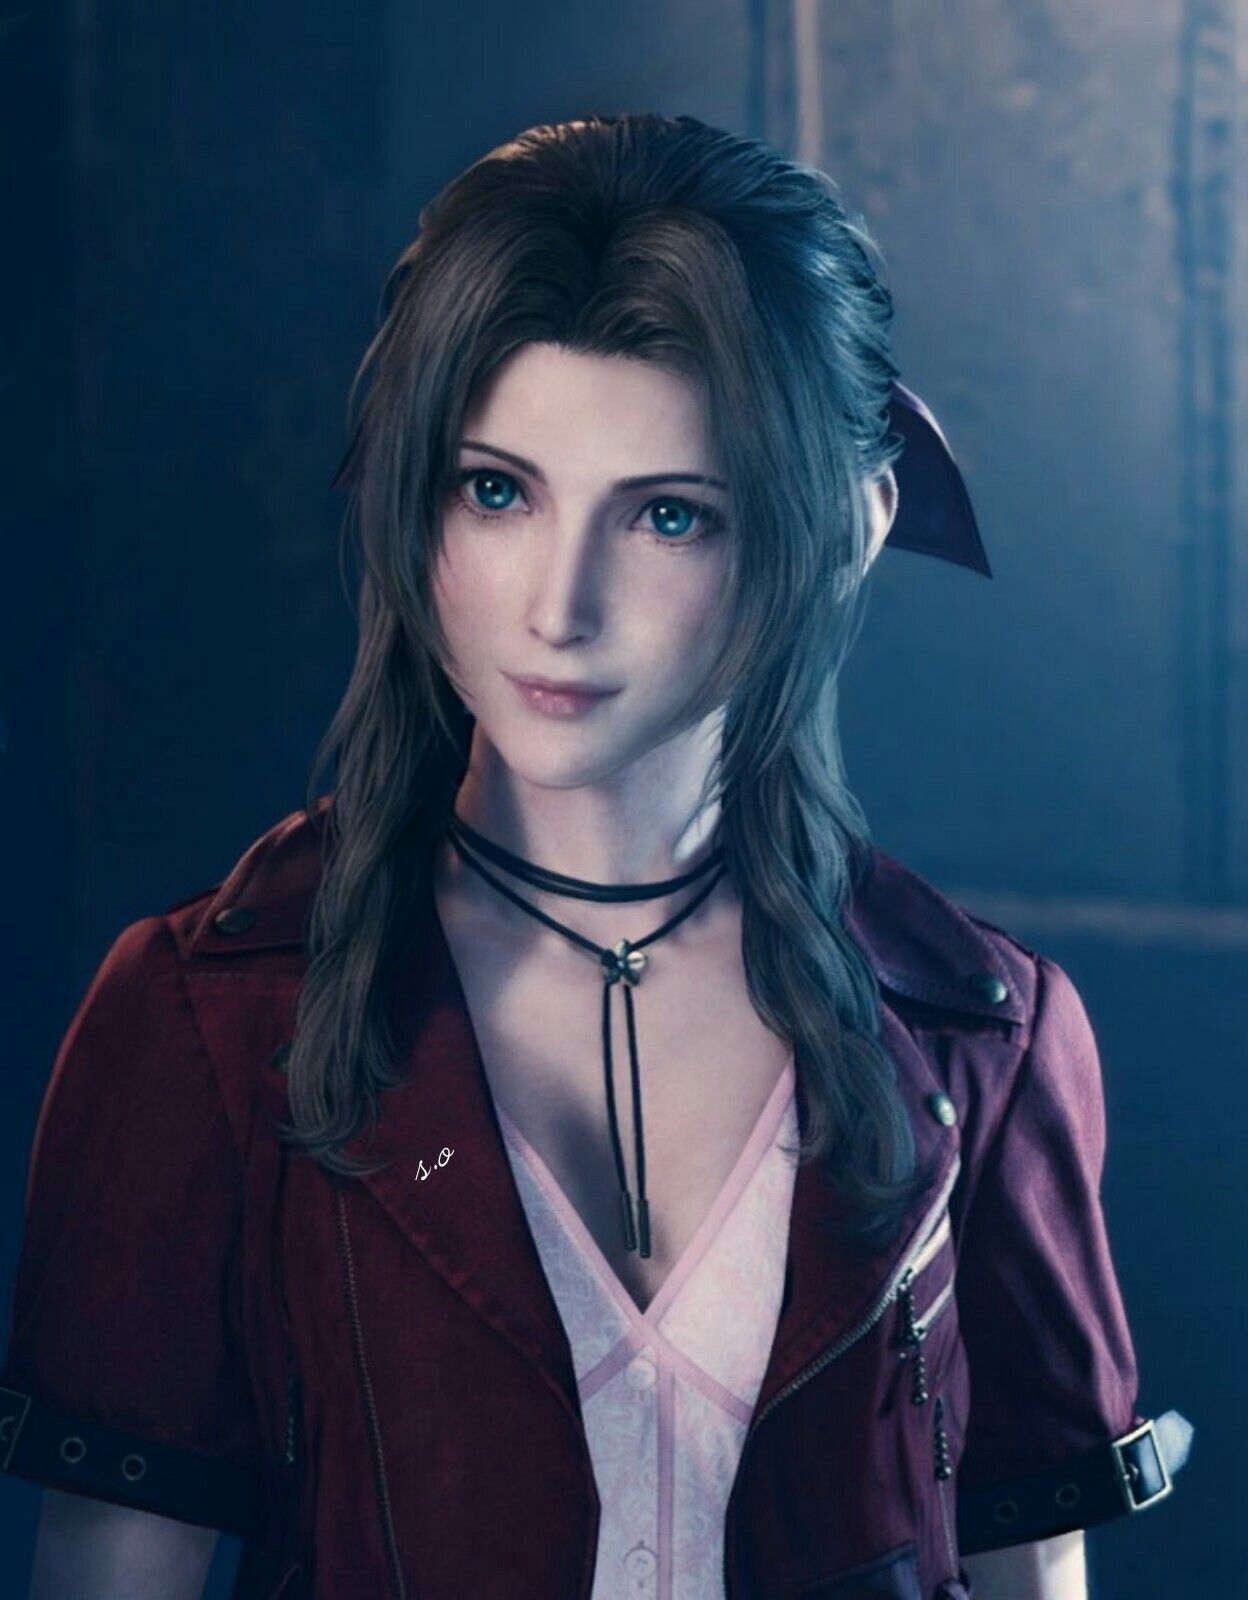 Ffvii Remake Aerith In 2020 With Images Final Fantasy Final